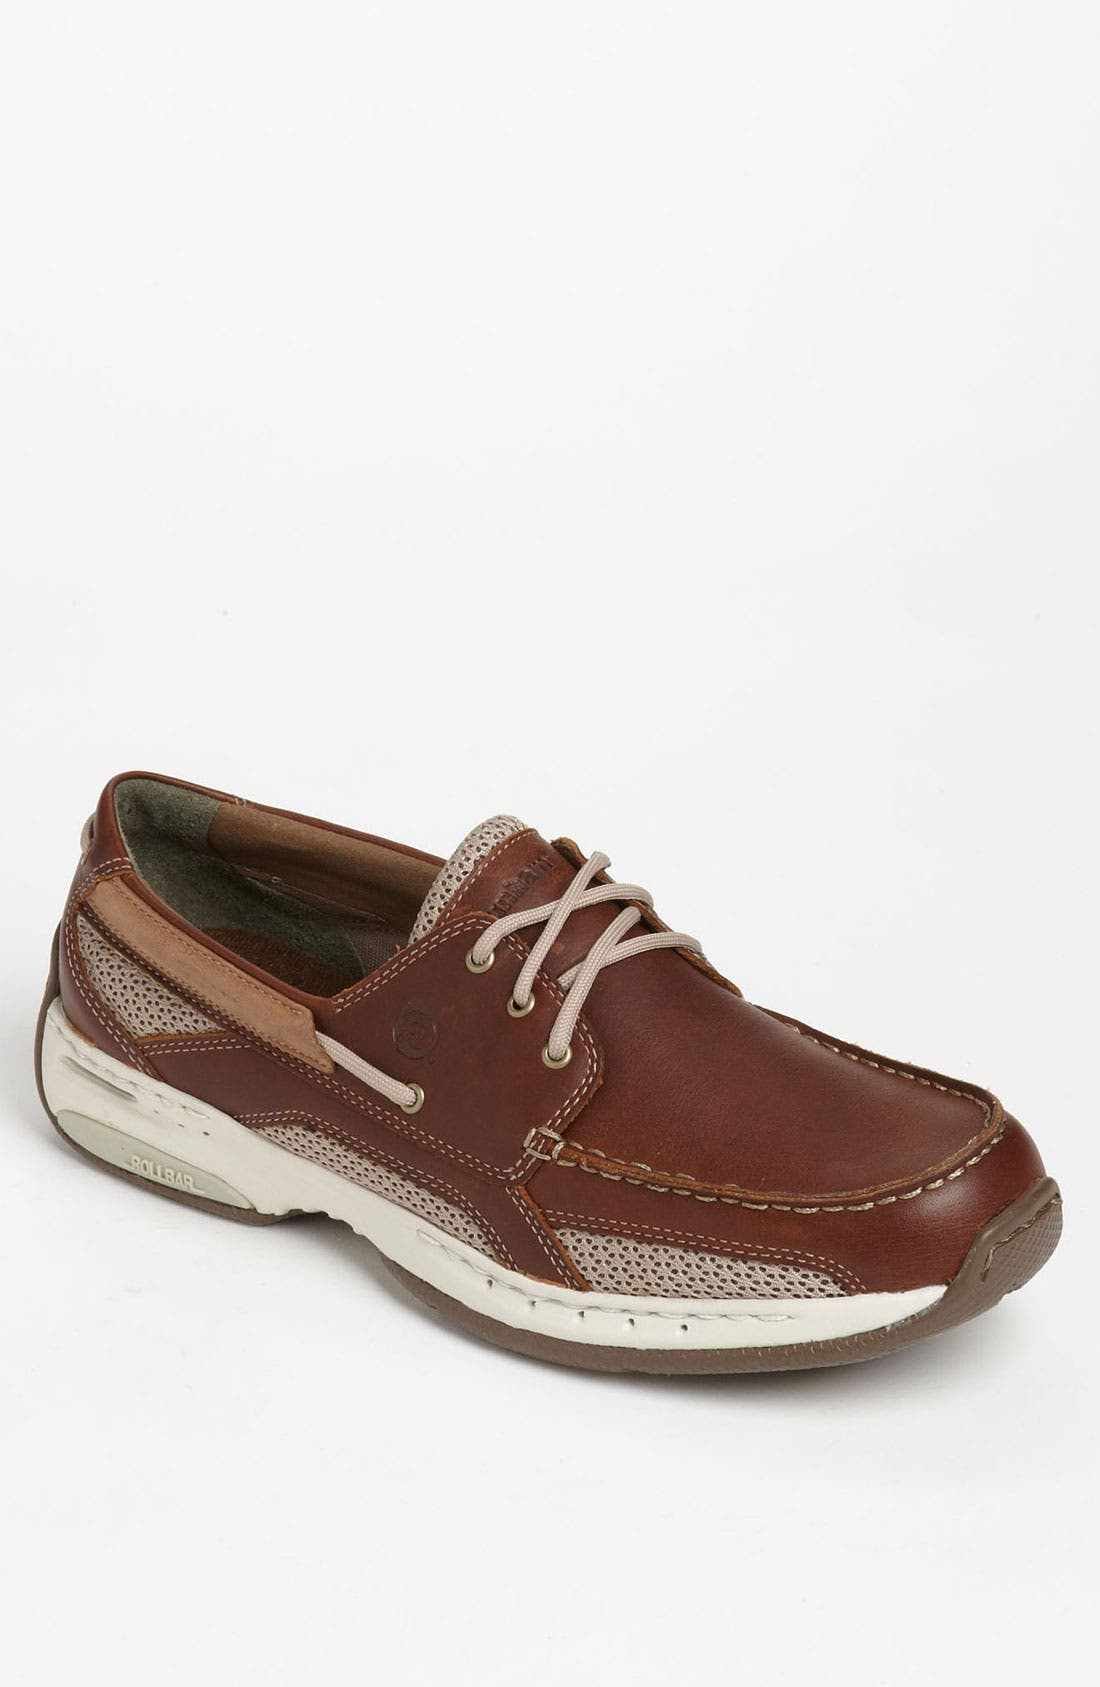 Main Image - Dunham 'Captain' Boat Shoe